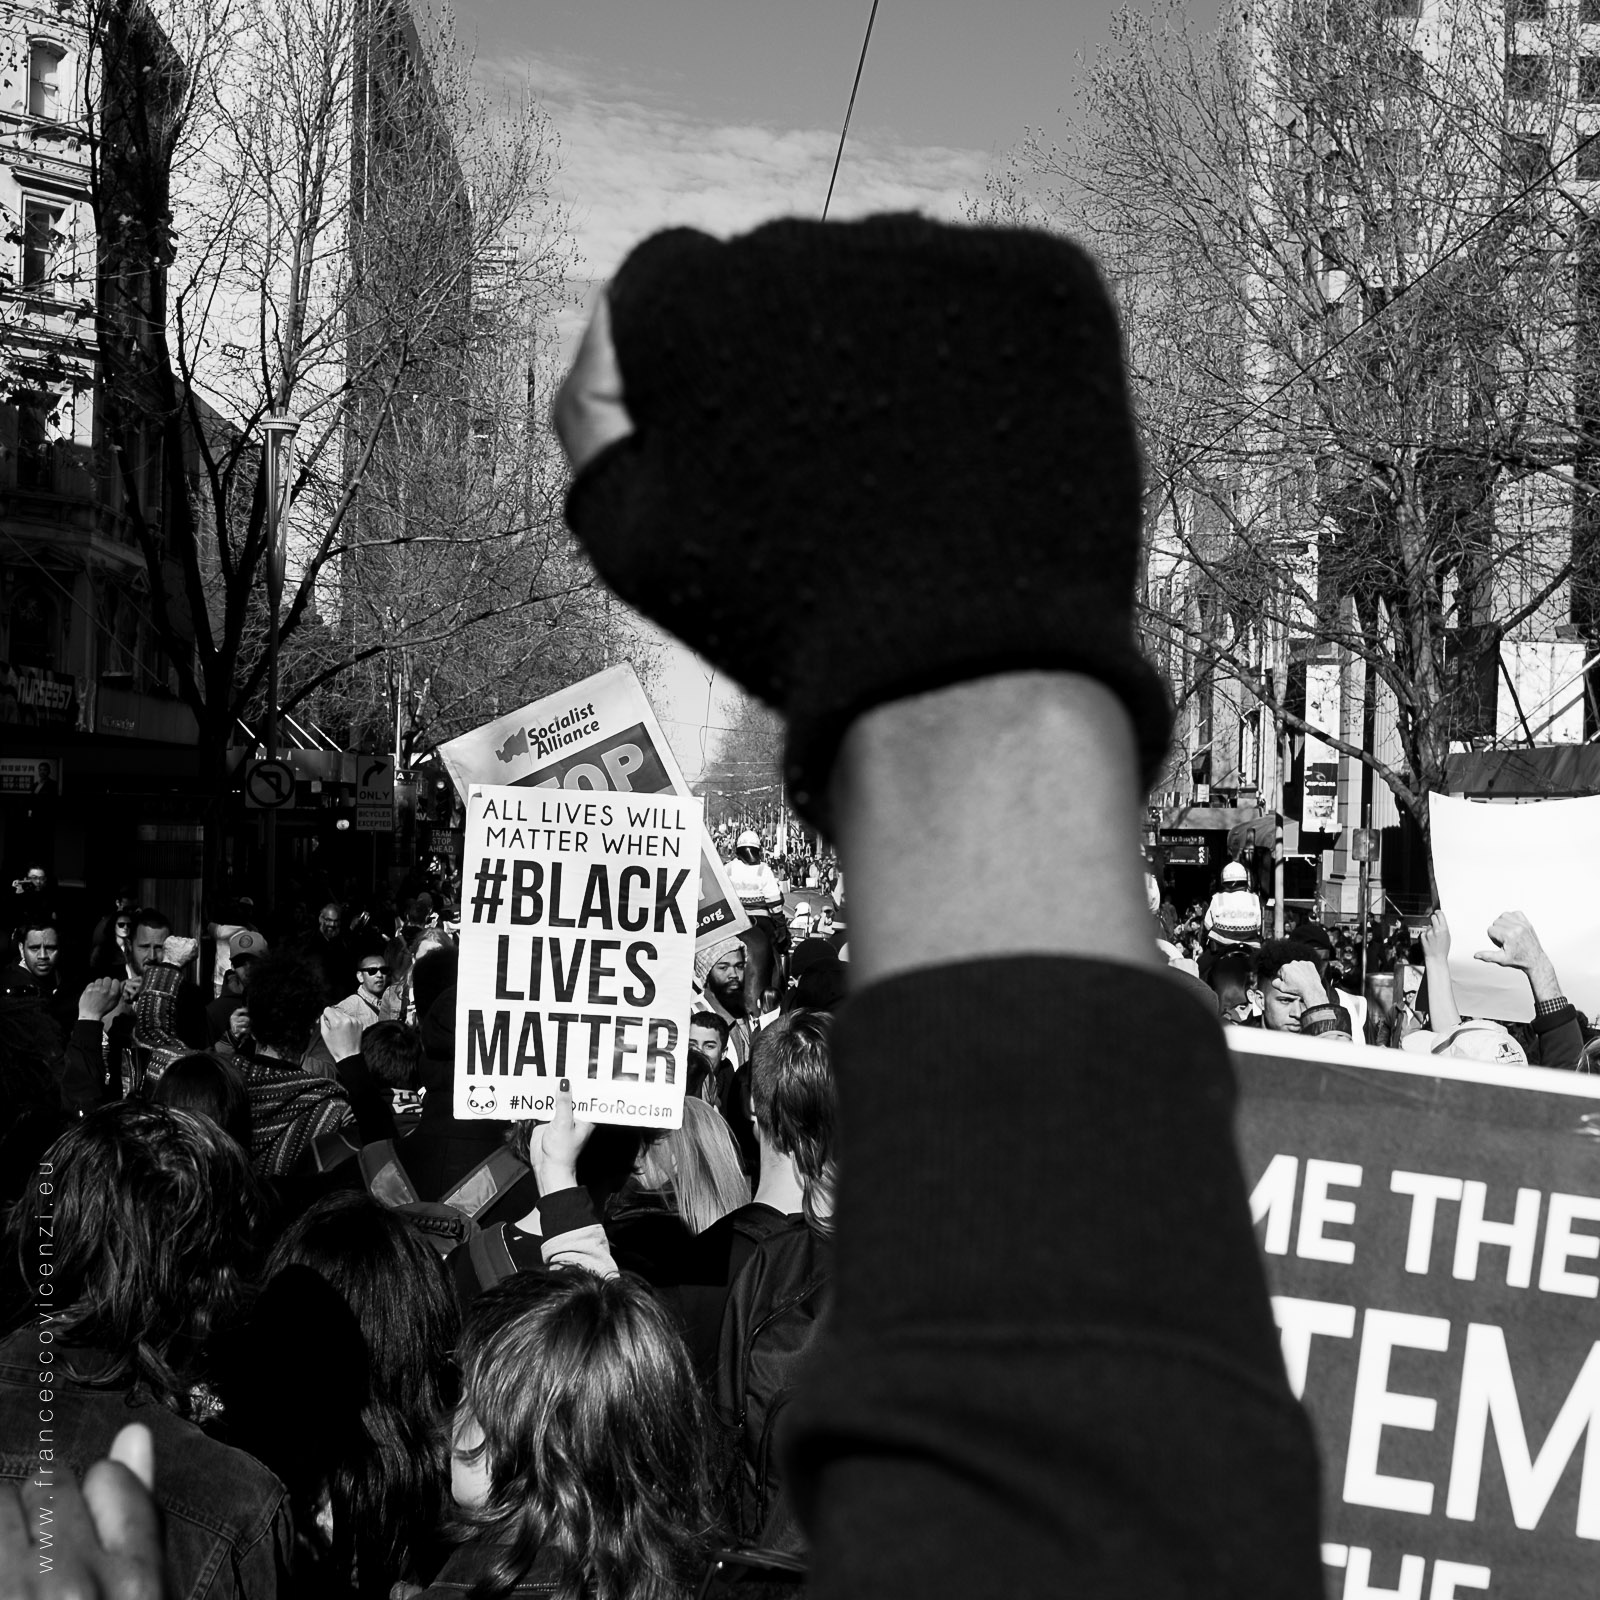 Black Lives Matter Demonstration - Melbourne Photo: https://www.facebook.com/francescovicenziphoto/